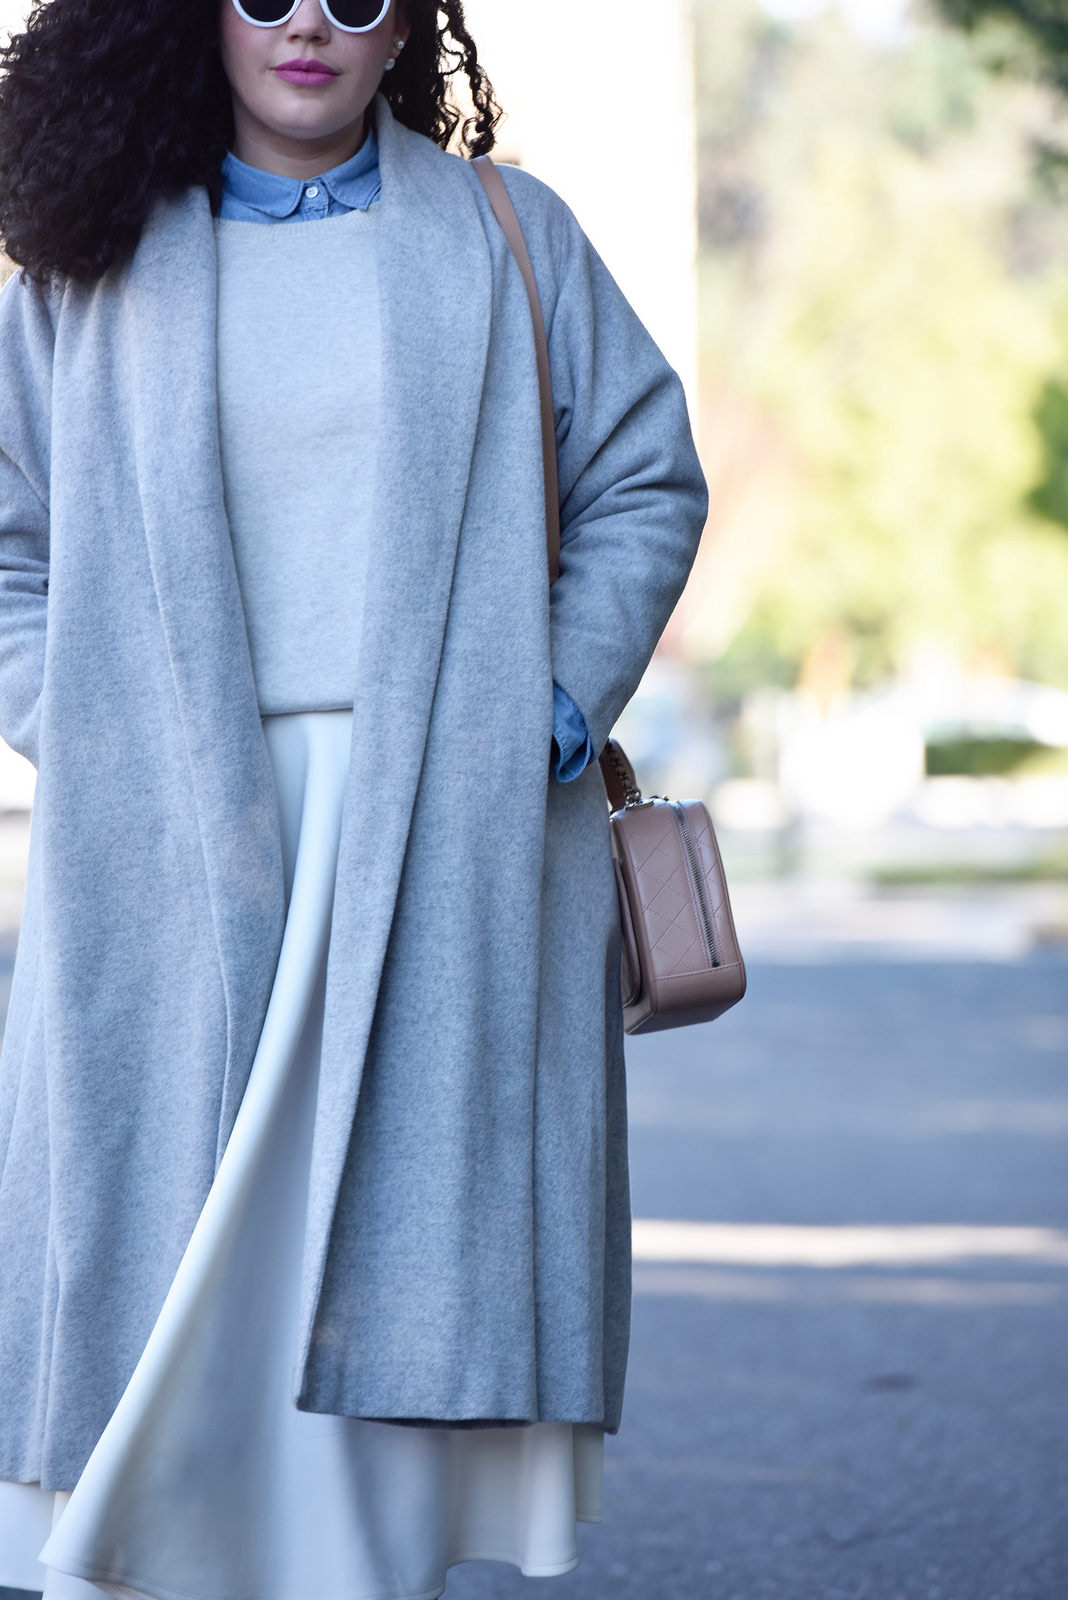 Girl With Curves featuring a grey trapeze coat from Asos, Ruffle Sweater from Asos, White Midi Skirt from Asos and Chanel Bag.